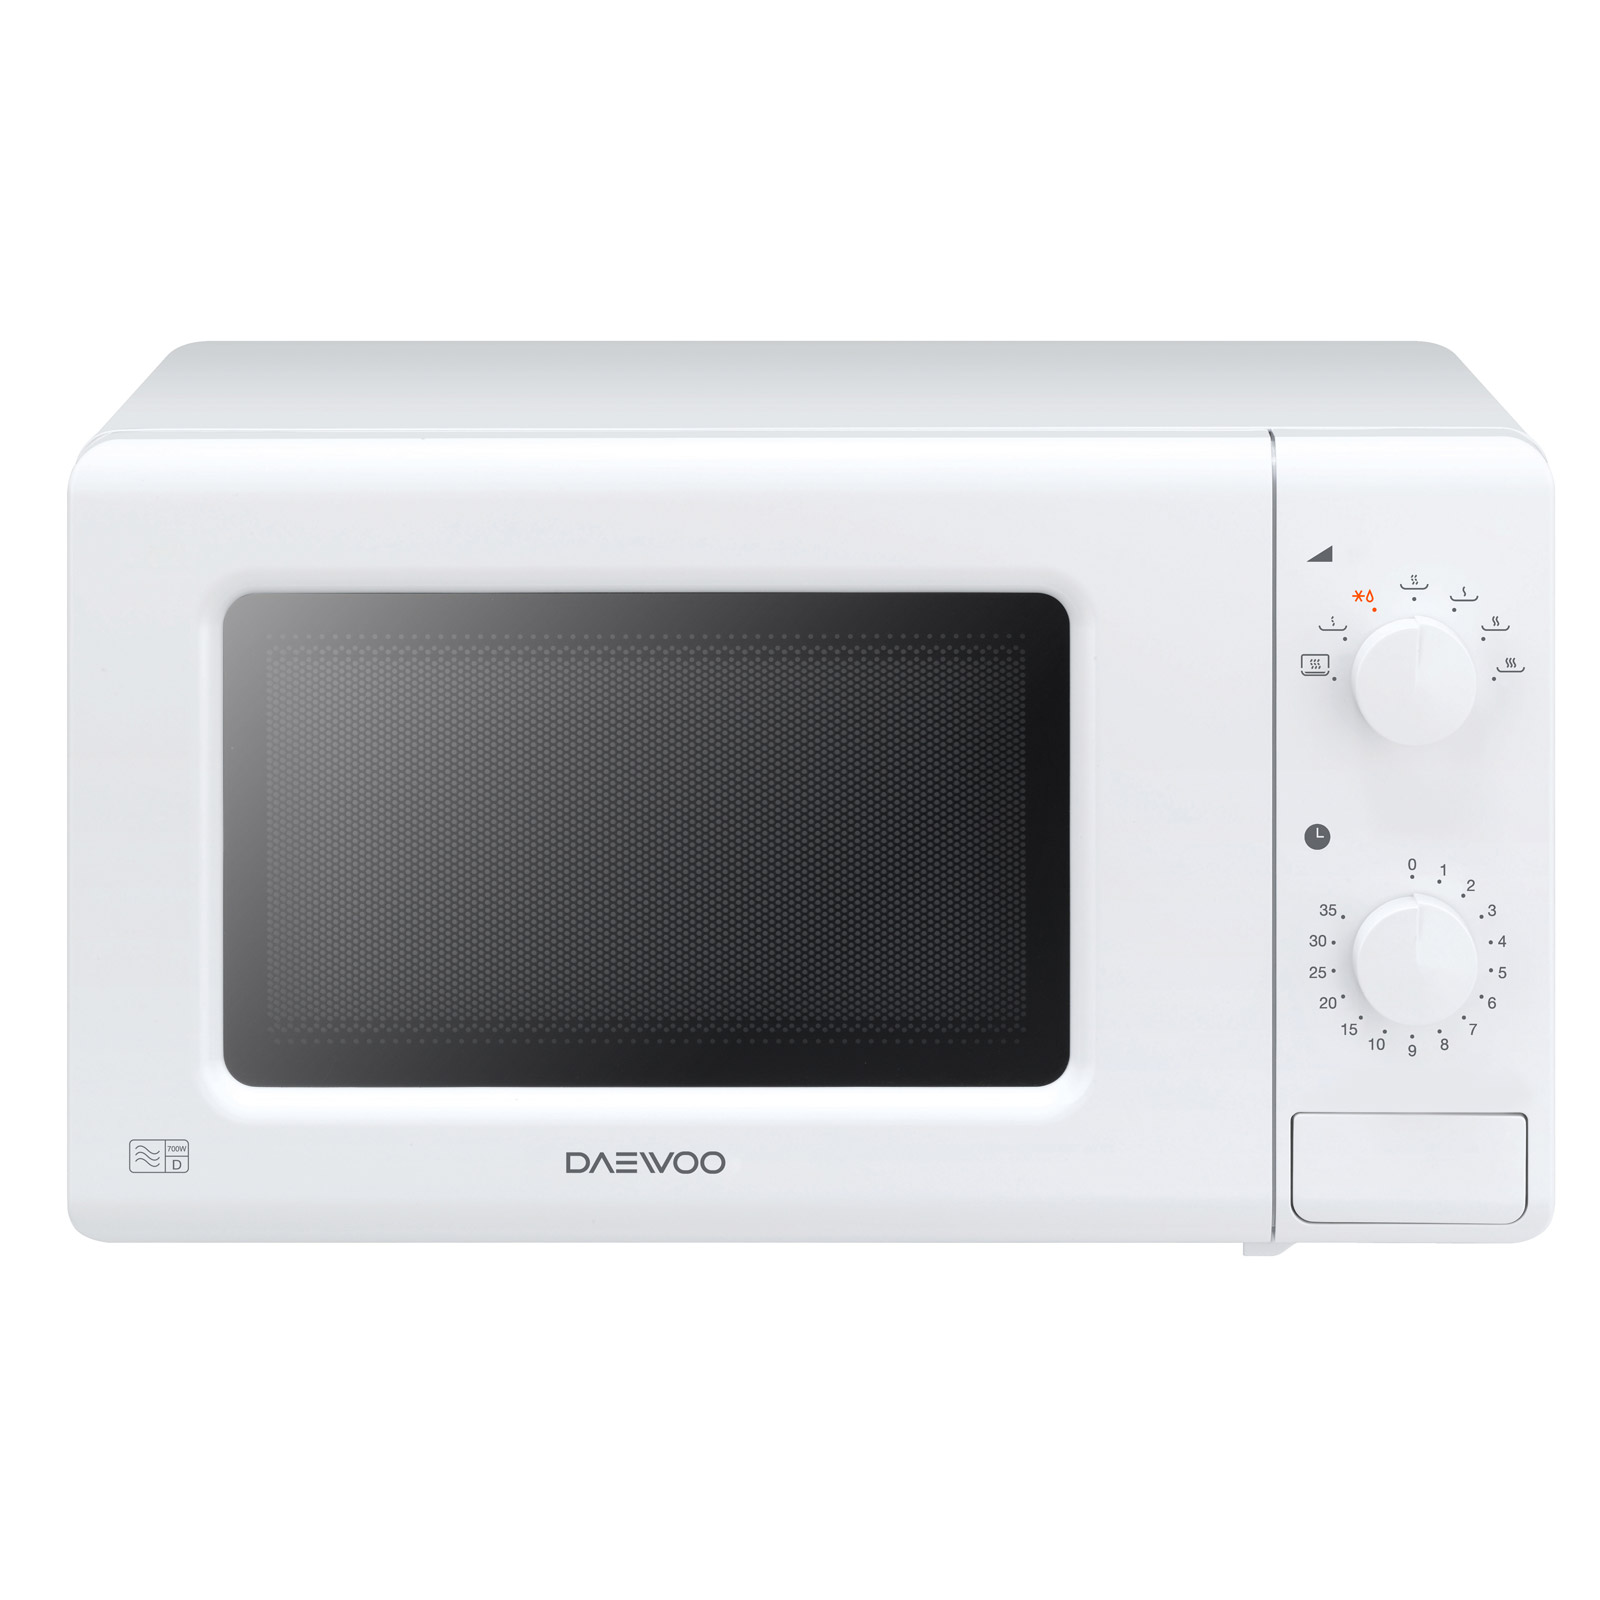 Daewoo KOR6M17 Microwave Oven in White, 20L 700W Dial Controls